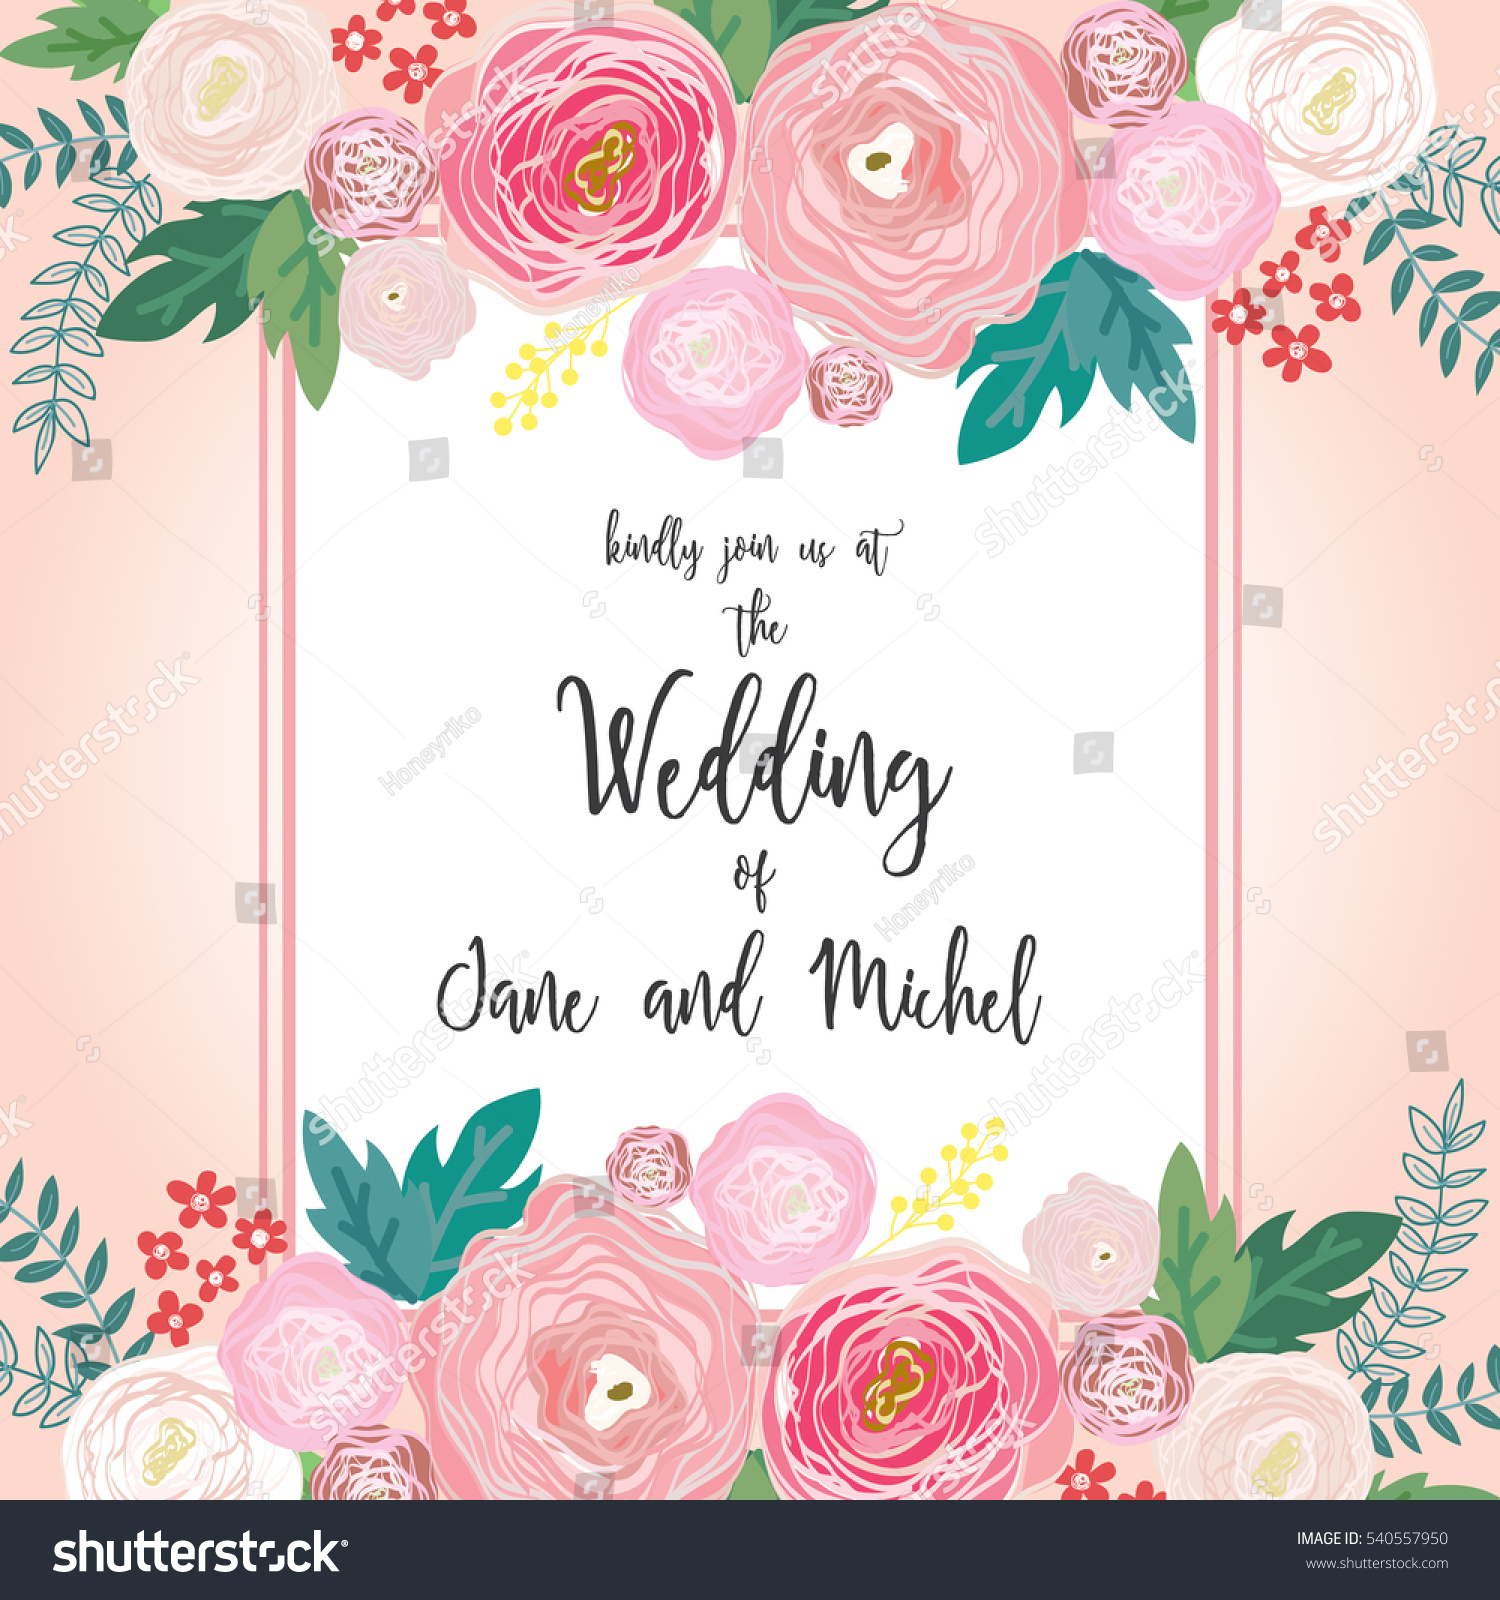 Flower Wedding Invitation Card Template Pastel Stock Vector (Royalty ...